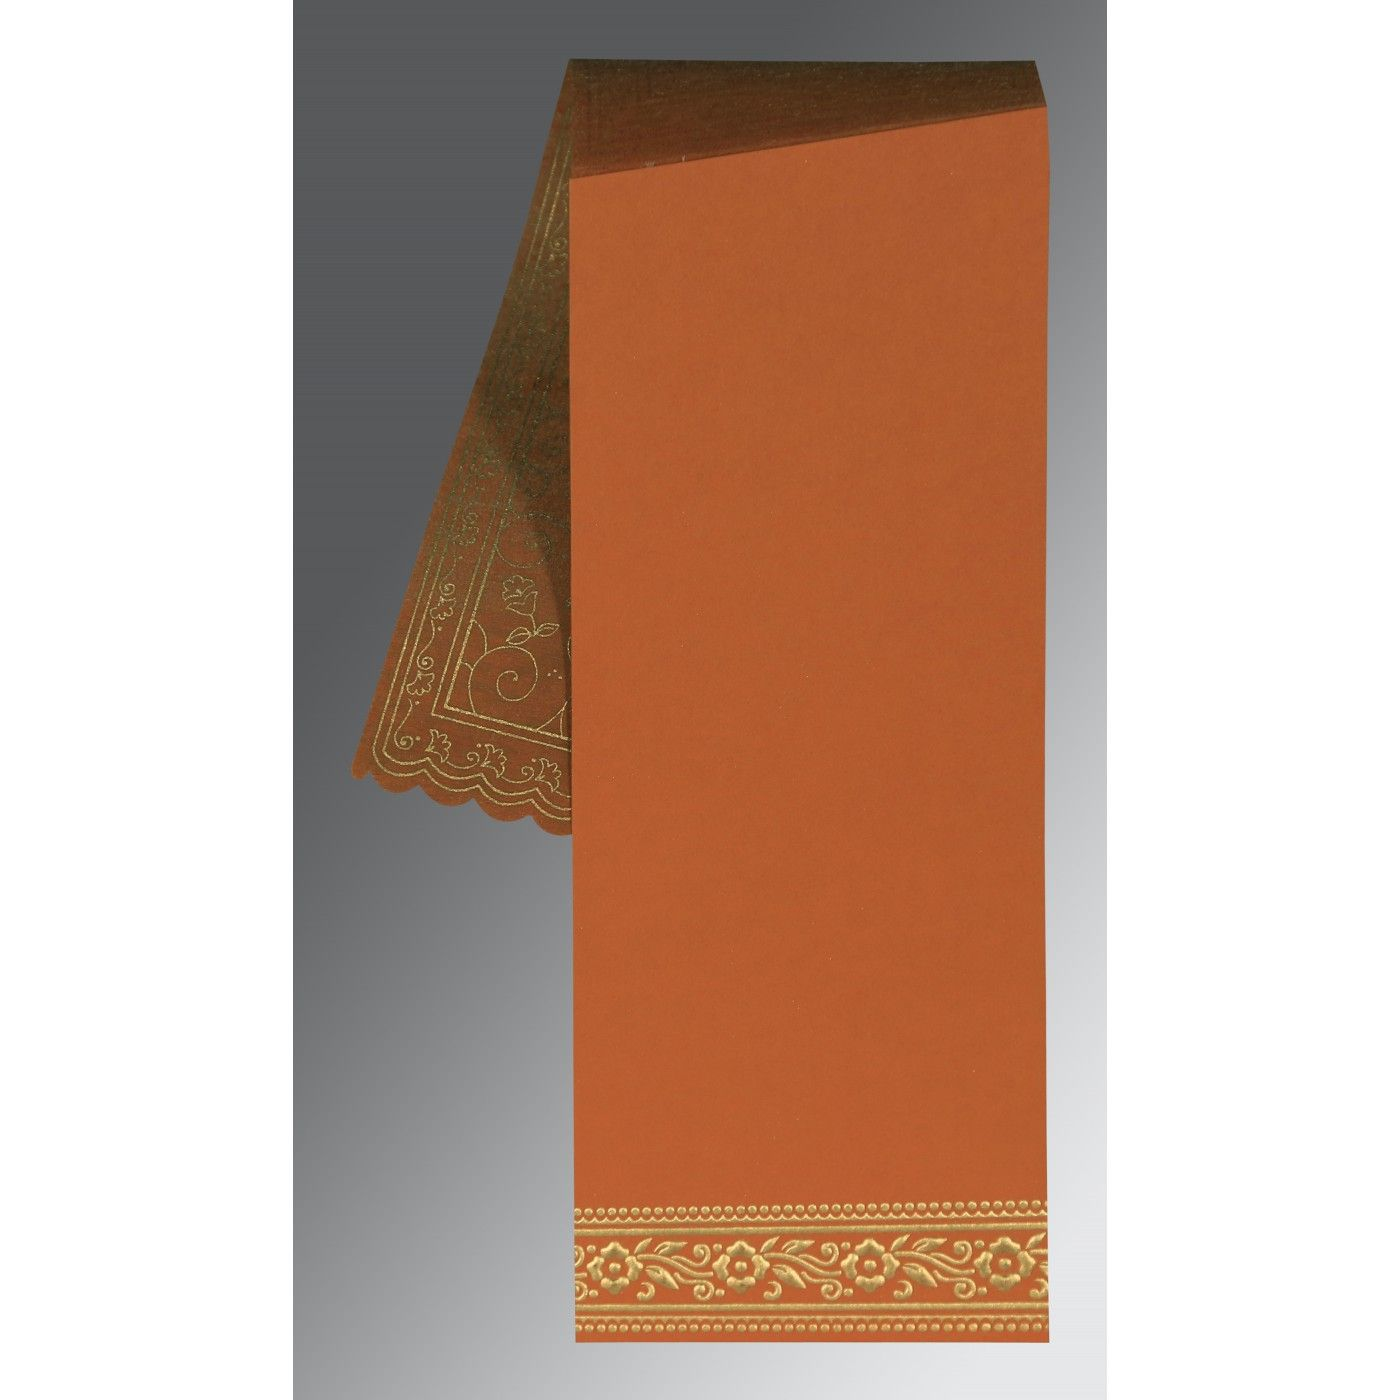 BURNT ORANGE WOOLY SCREEN PRINTED WEDDING INVITATION : CRU-8220C - IndianWeddingCards